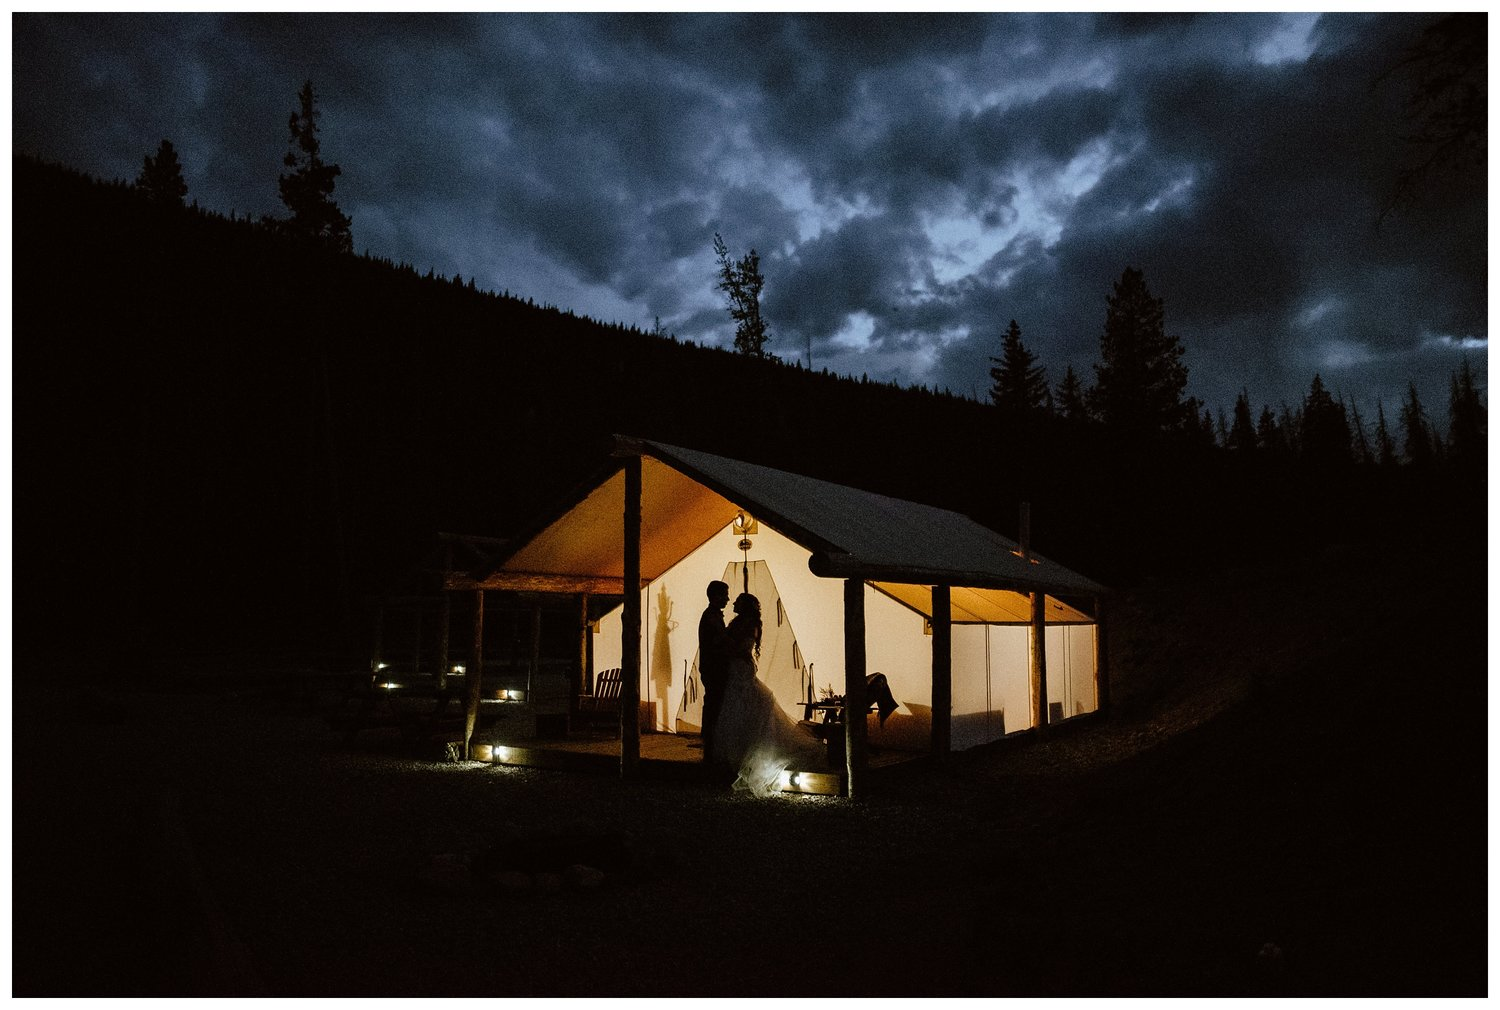 A bride and groom embrace underneath a tent in the dark.